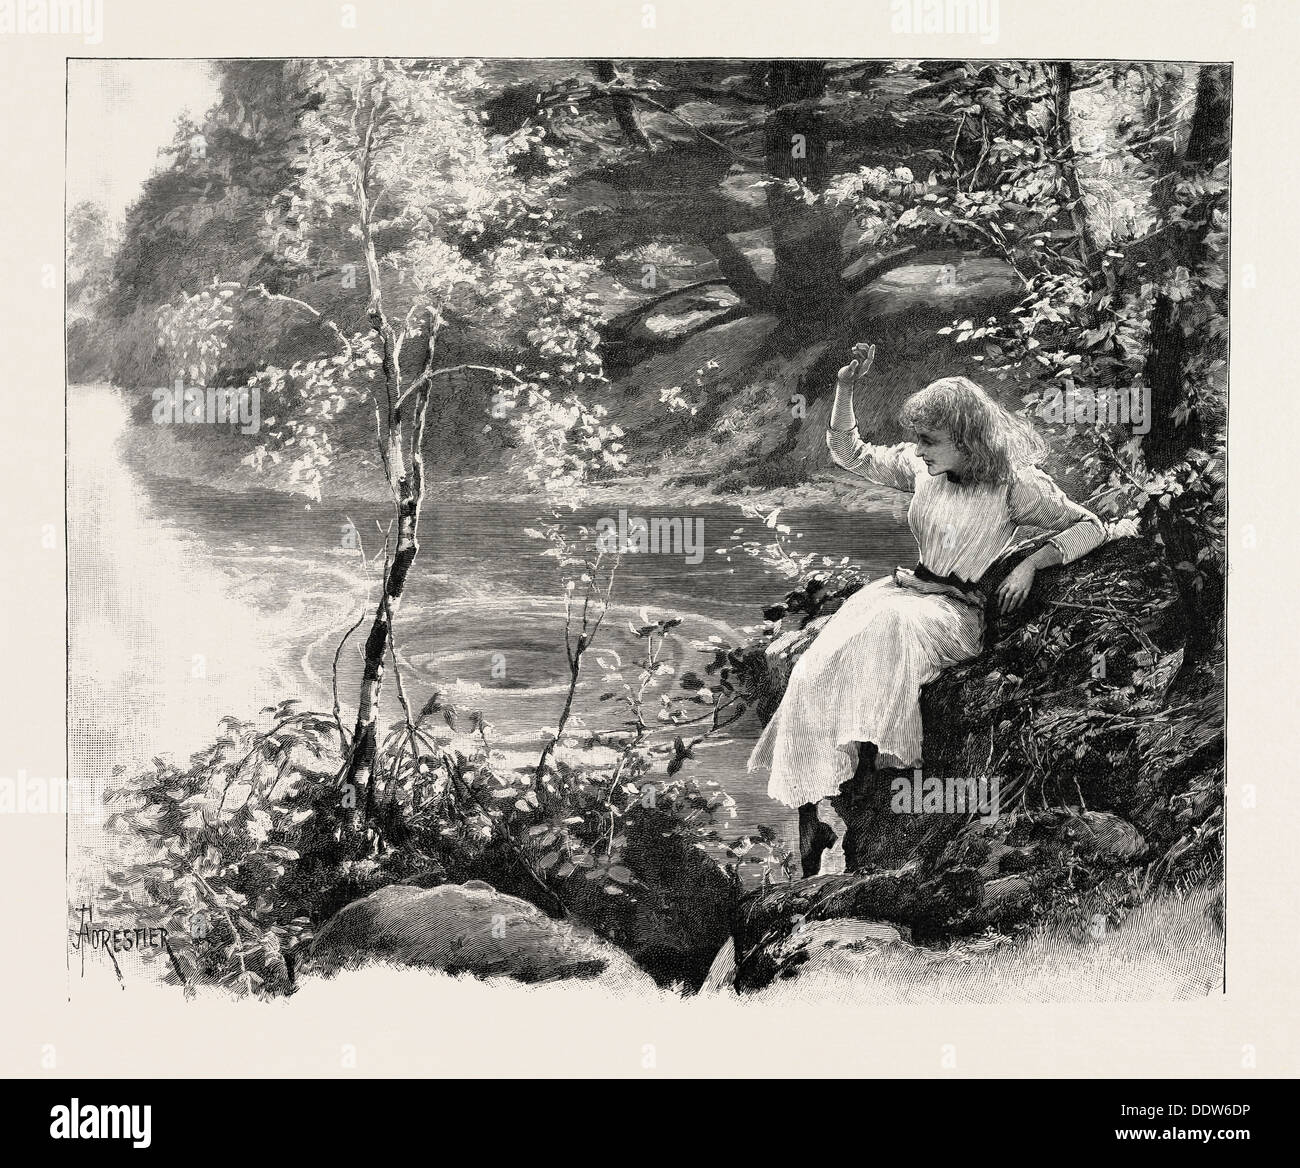 THE NYMPH OF THE EDDY, 1893 engraving - Stock Image